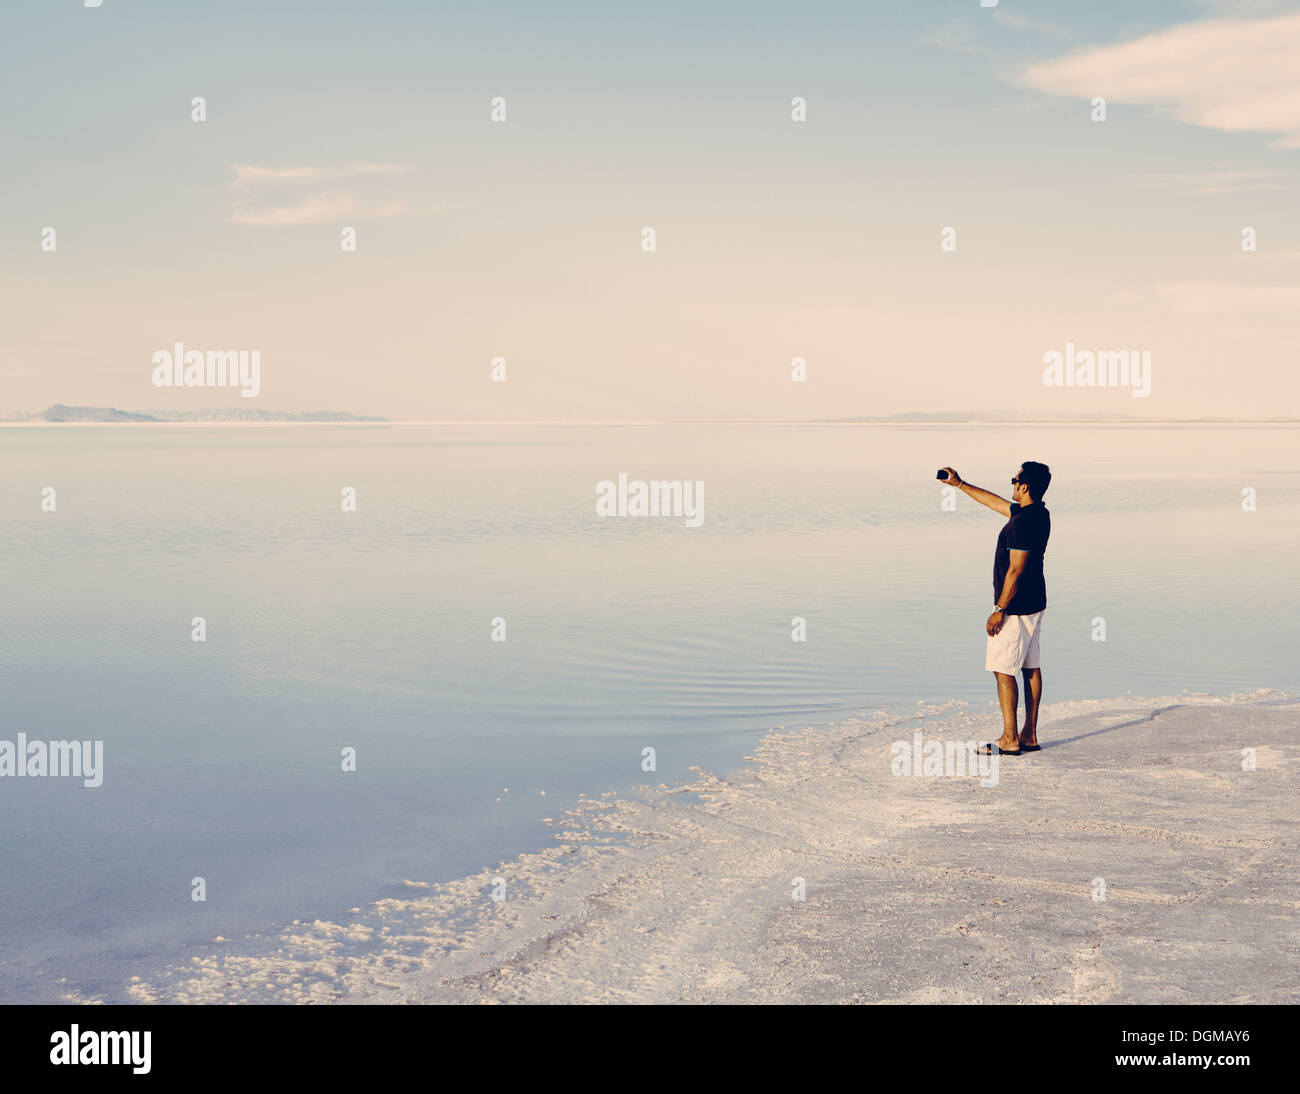 A man standing at edge of the flooded Bonneville Salt Flats at dusk, taking a photograph with a smart phone Stock Photo